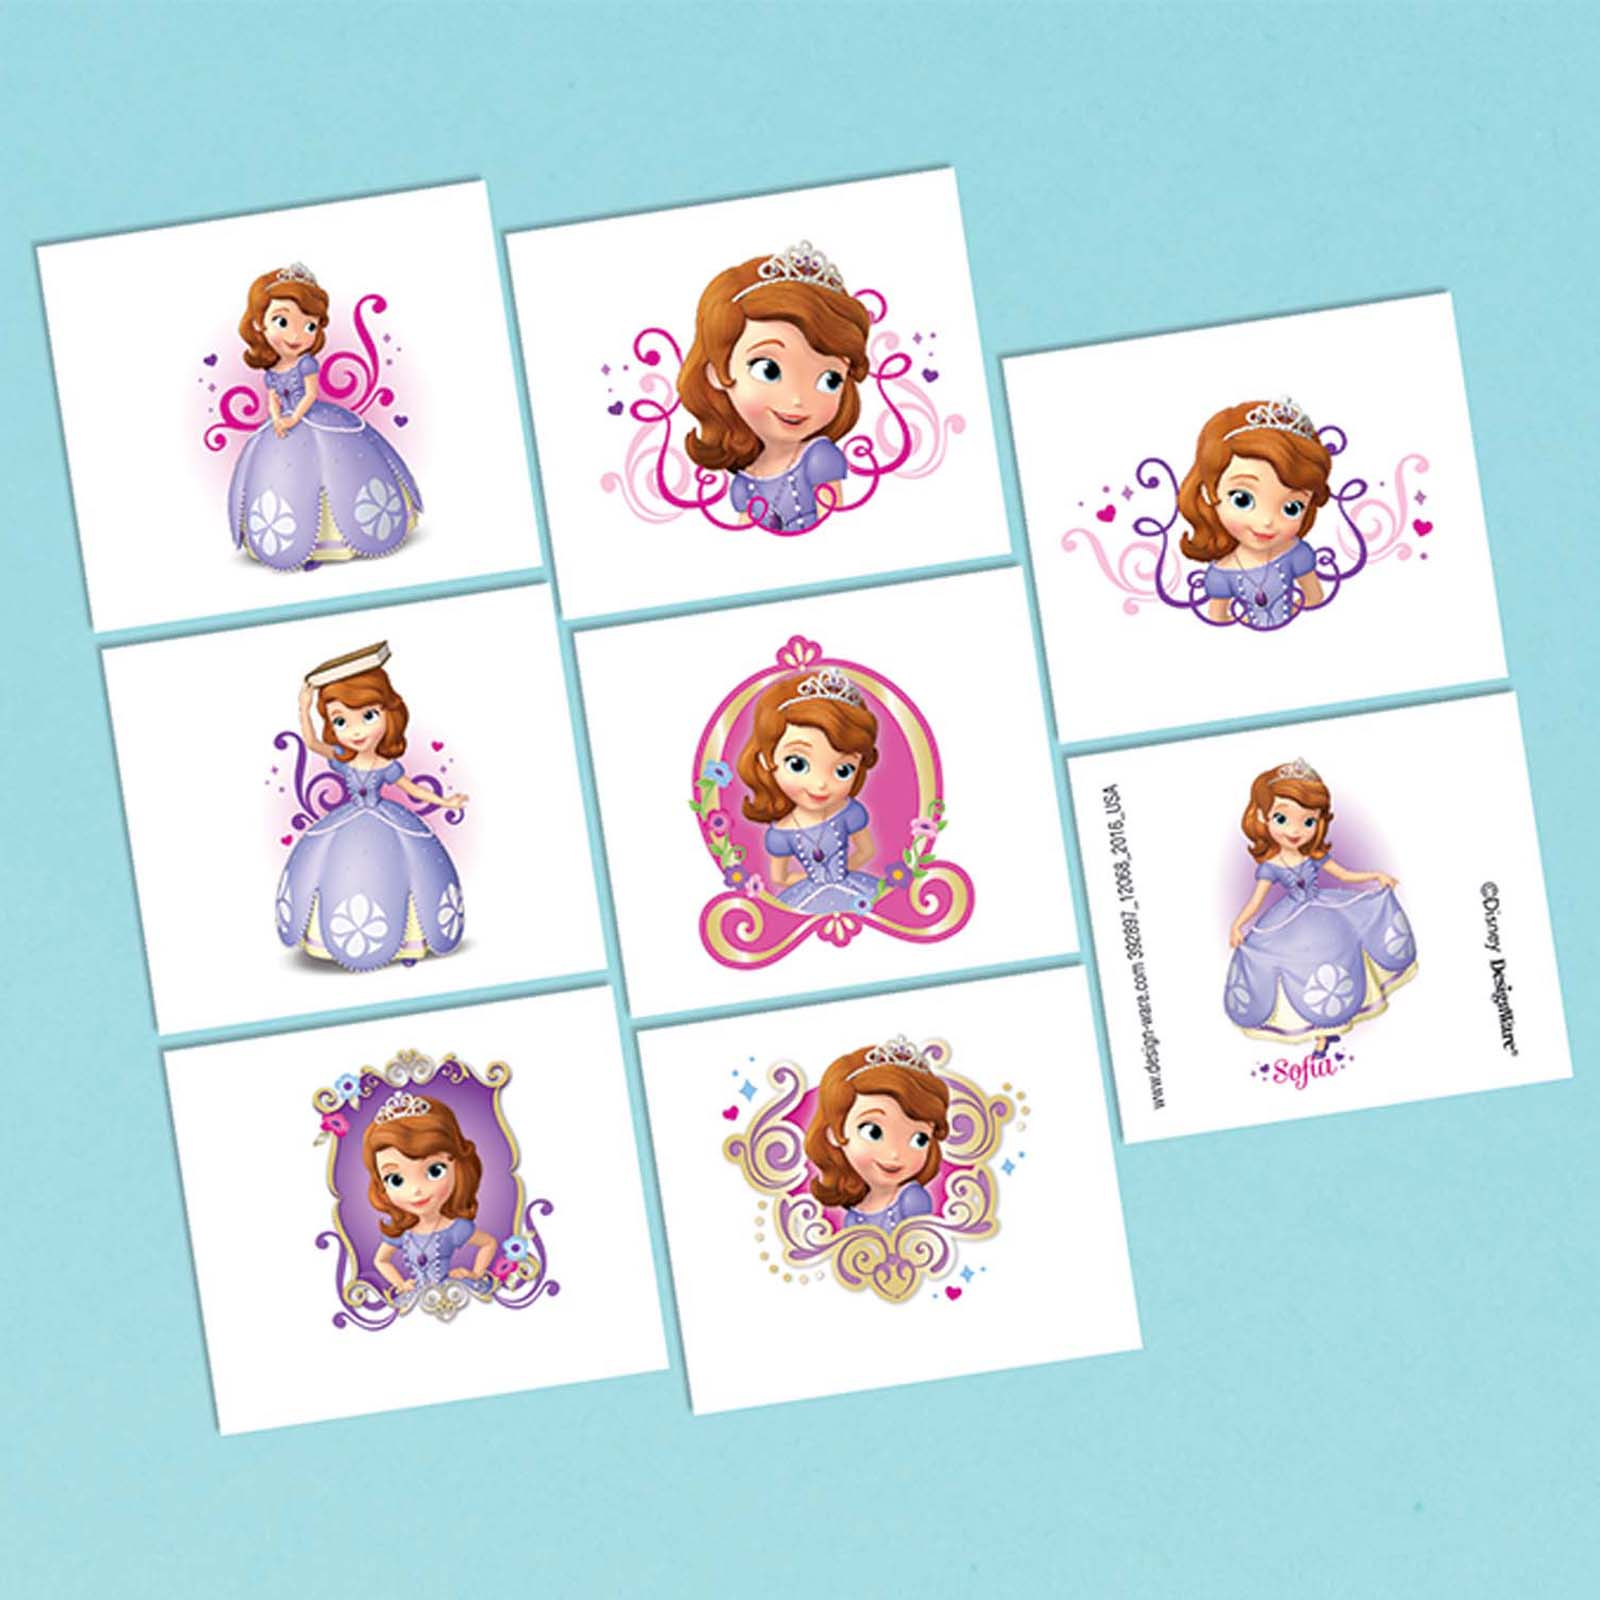 Sofia The First Tattoo Favors (16 Pack) - Party Supplies